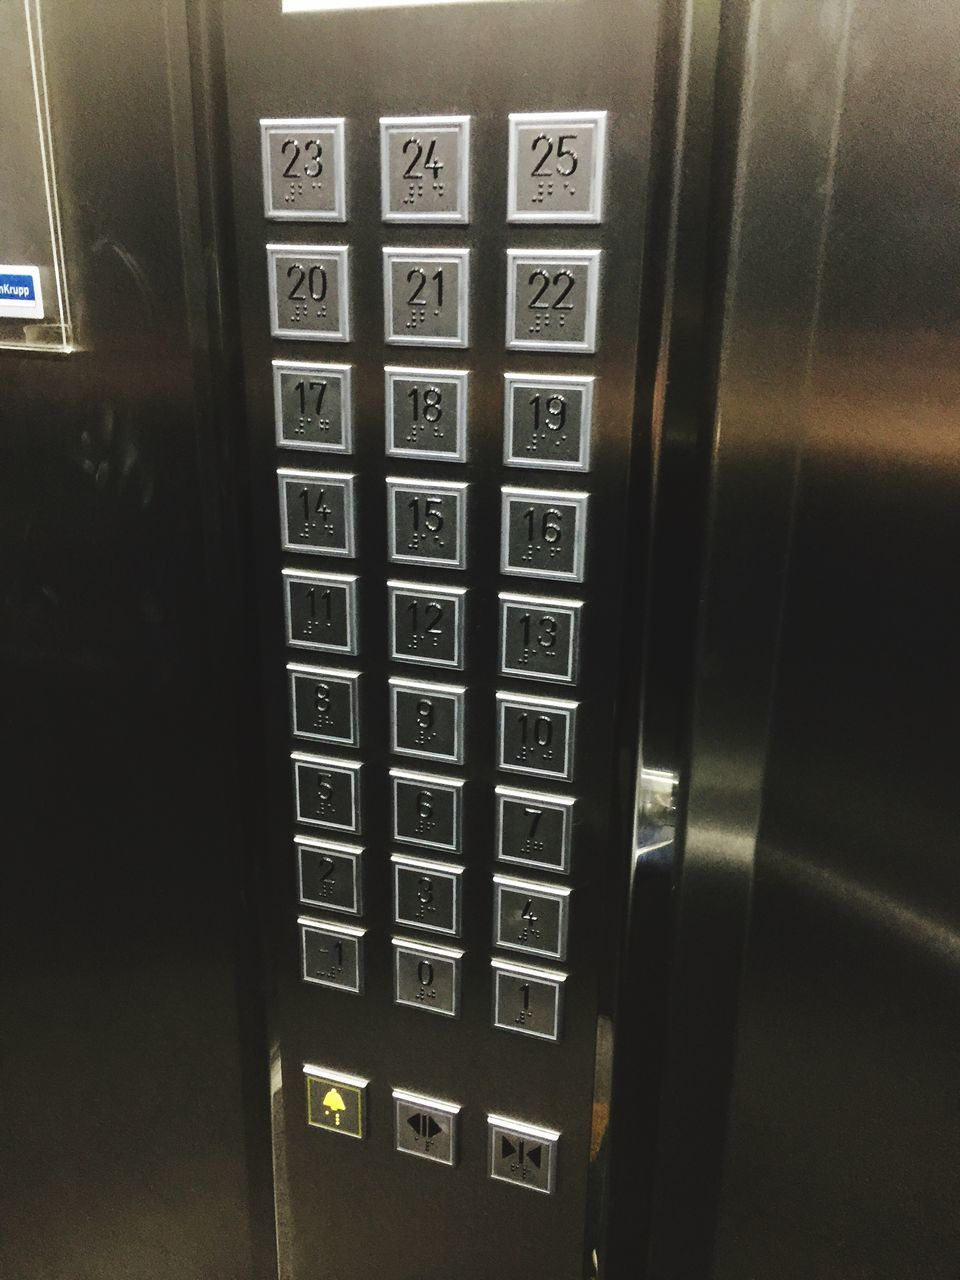 indoors, number, no people, communication, technology, locker, close-up, control panel, day